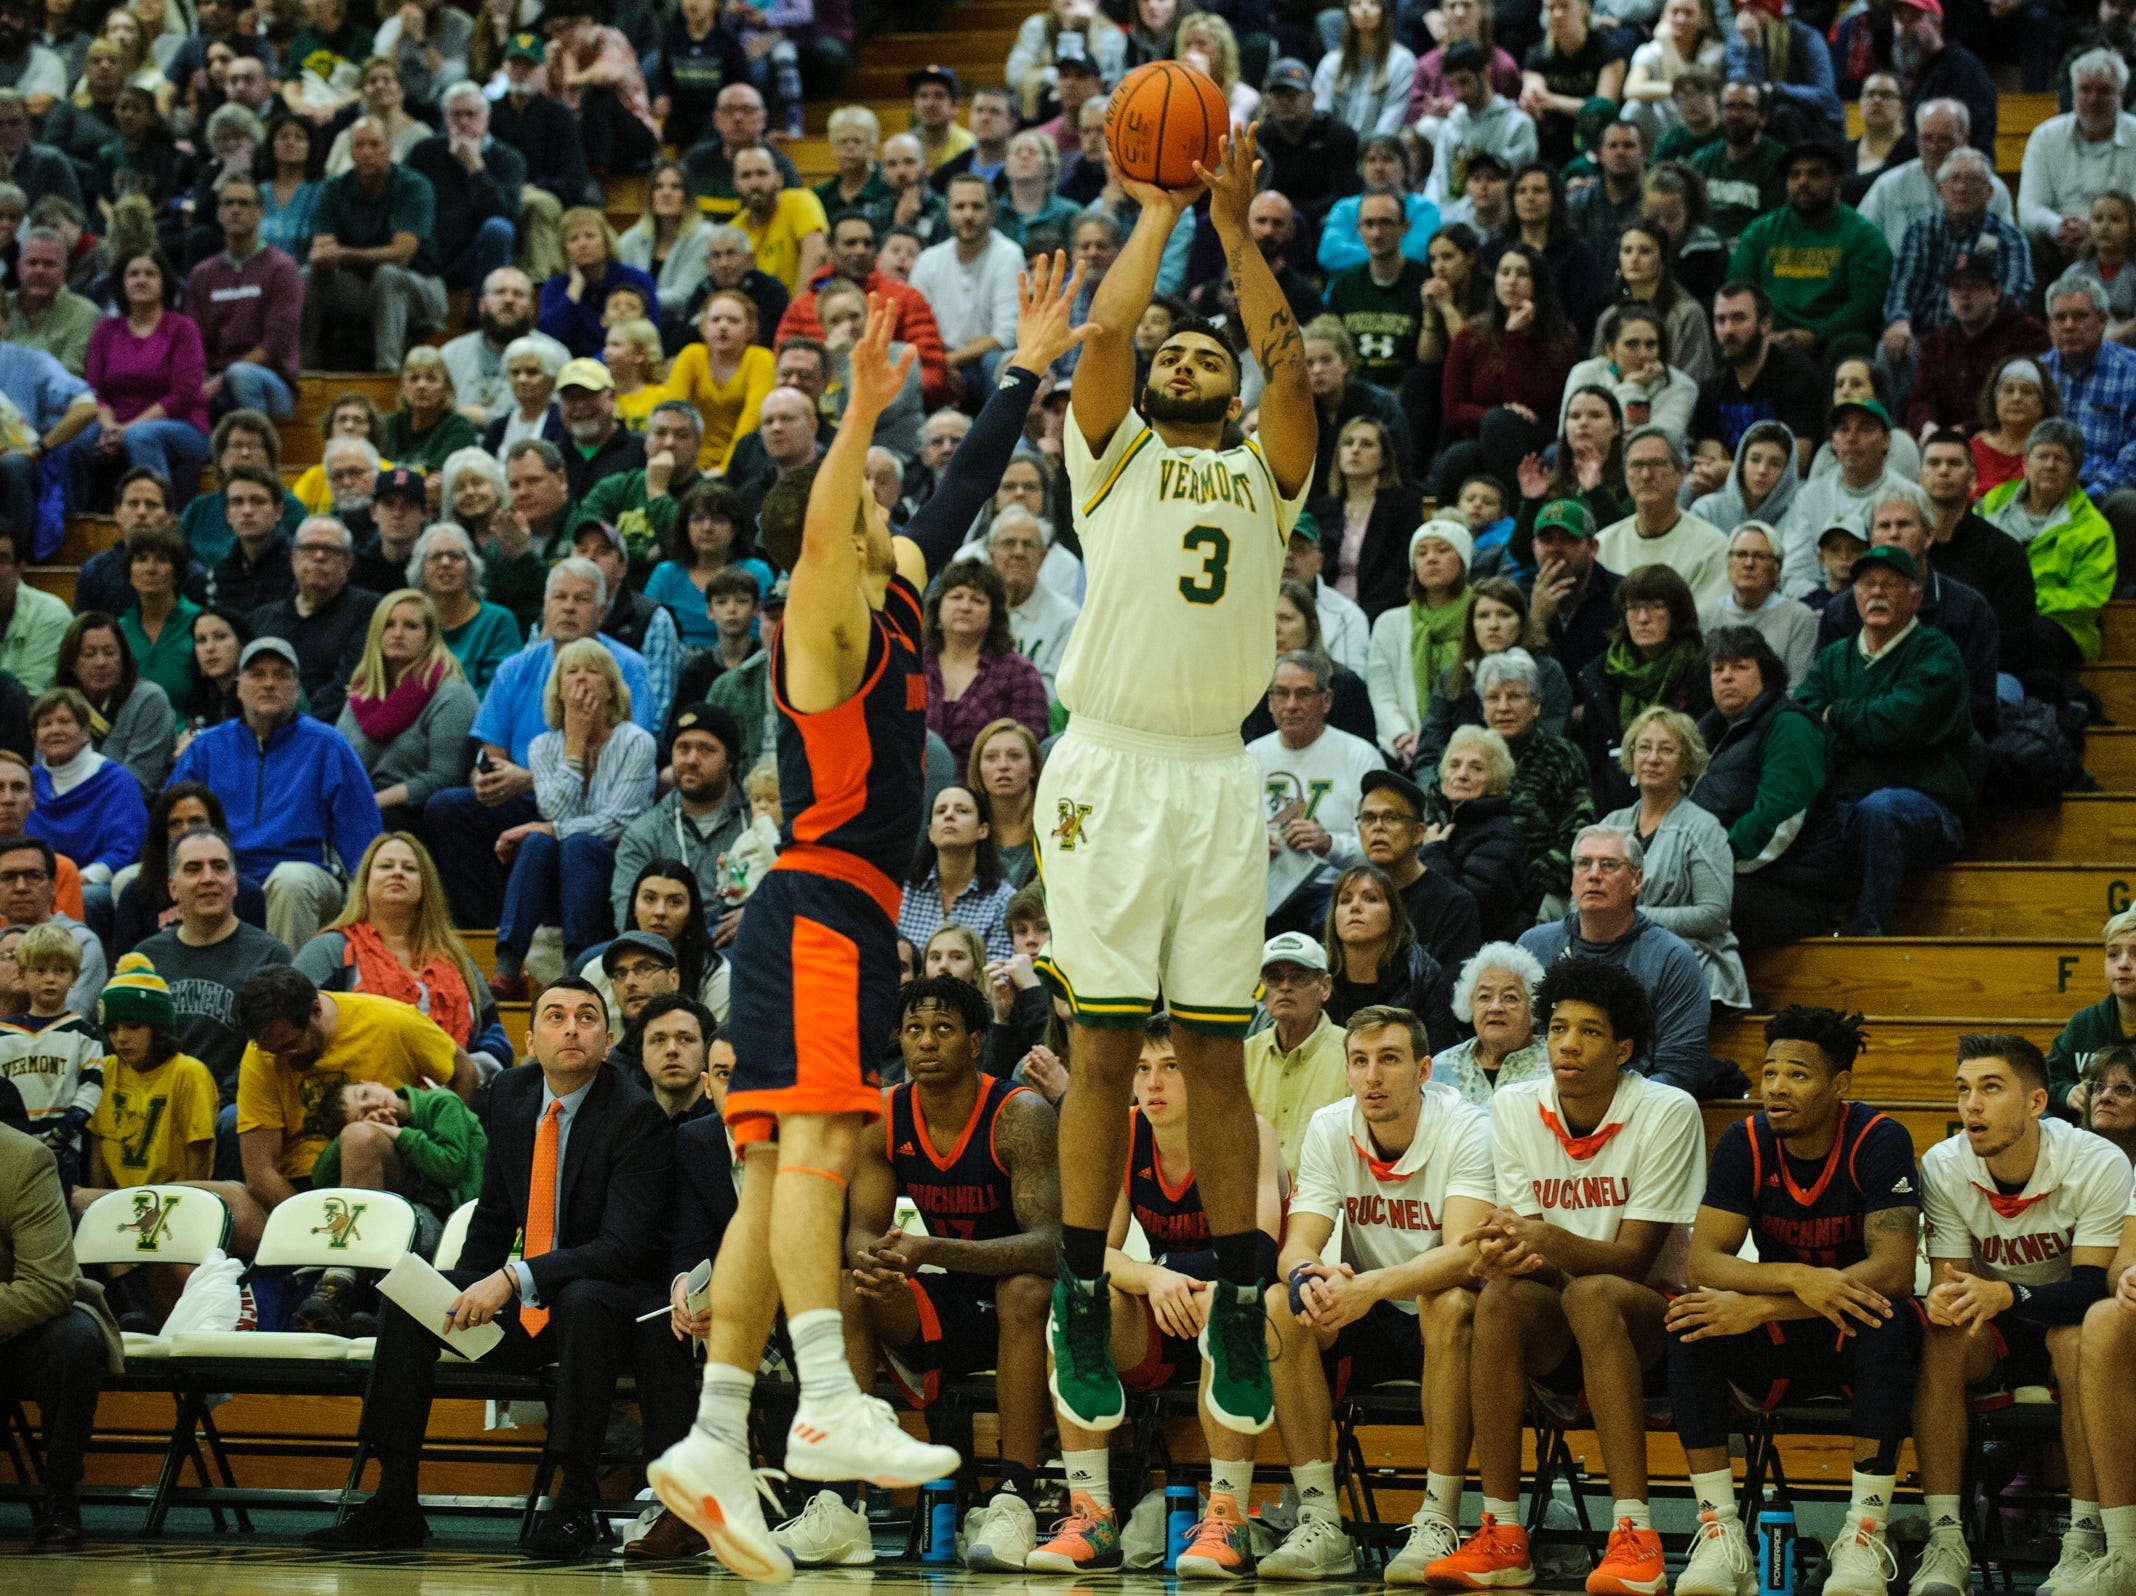 Vermont forward Anthony Lamb (3) shoots a three pointer during the men's basketball game between the Bucknell Bison and the Vermont Catamounts at Patrick Gym on Sunday afternoon November 25, 2018 in Burlington.